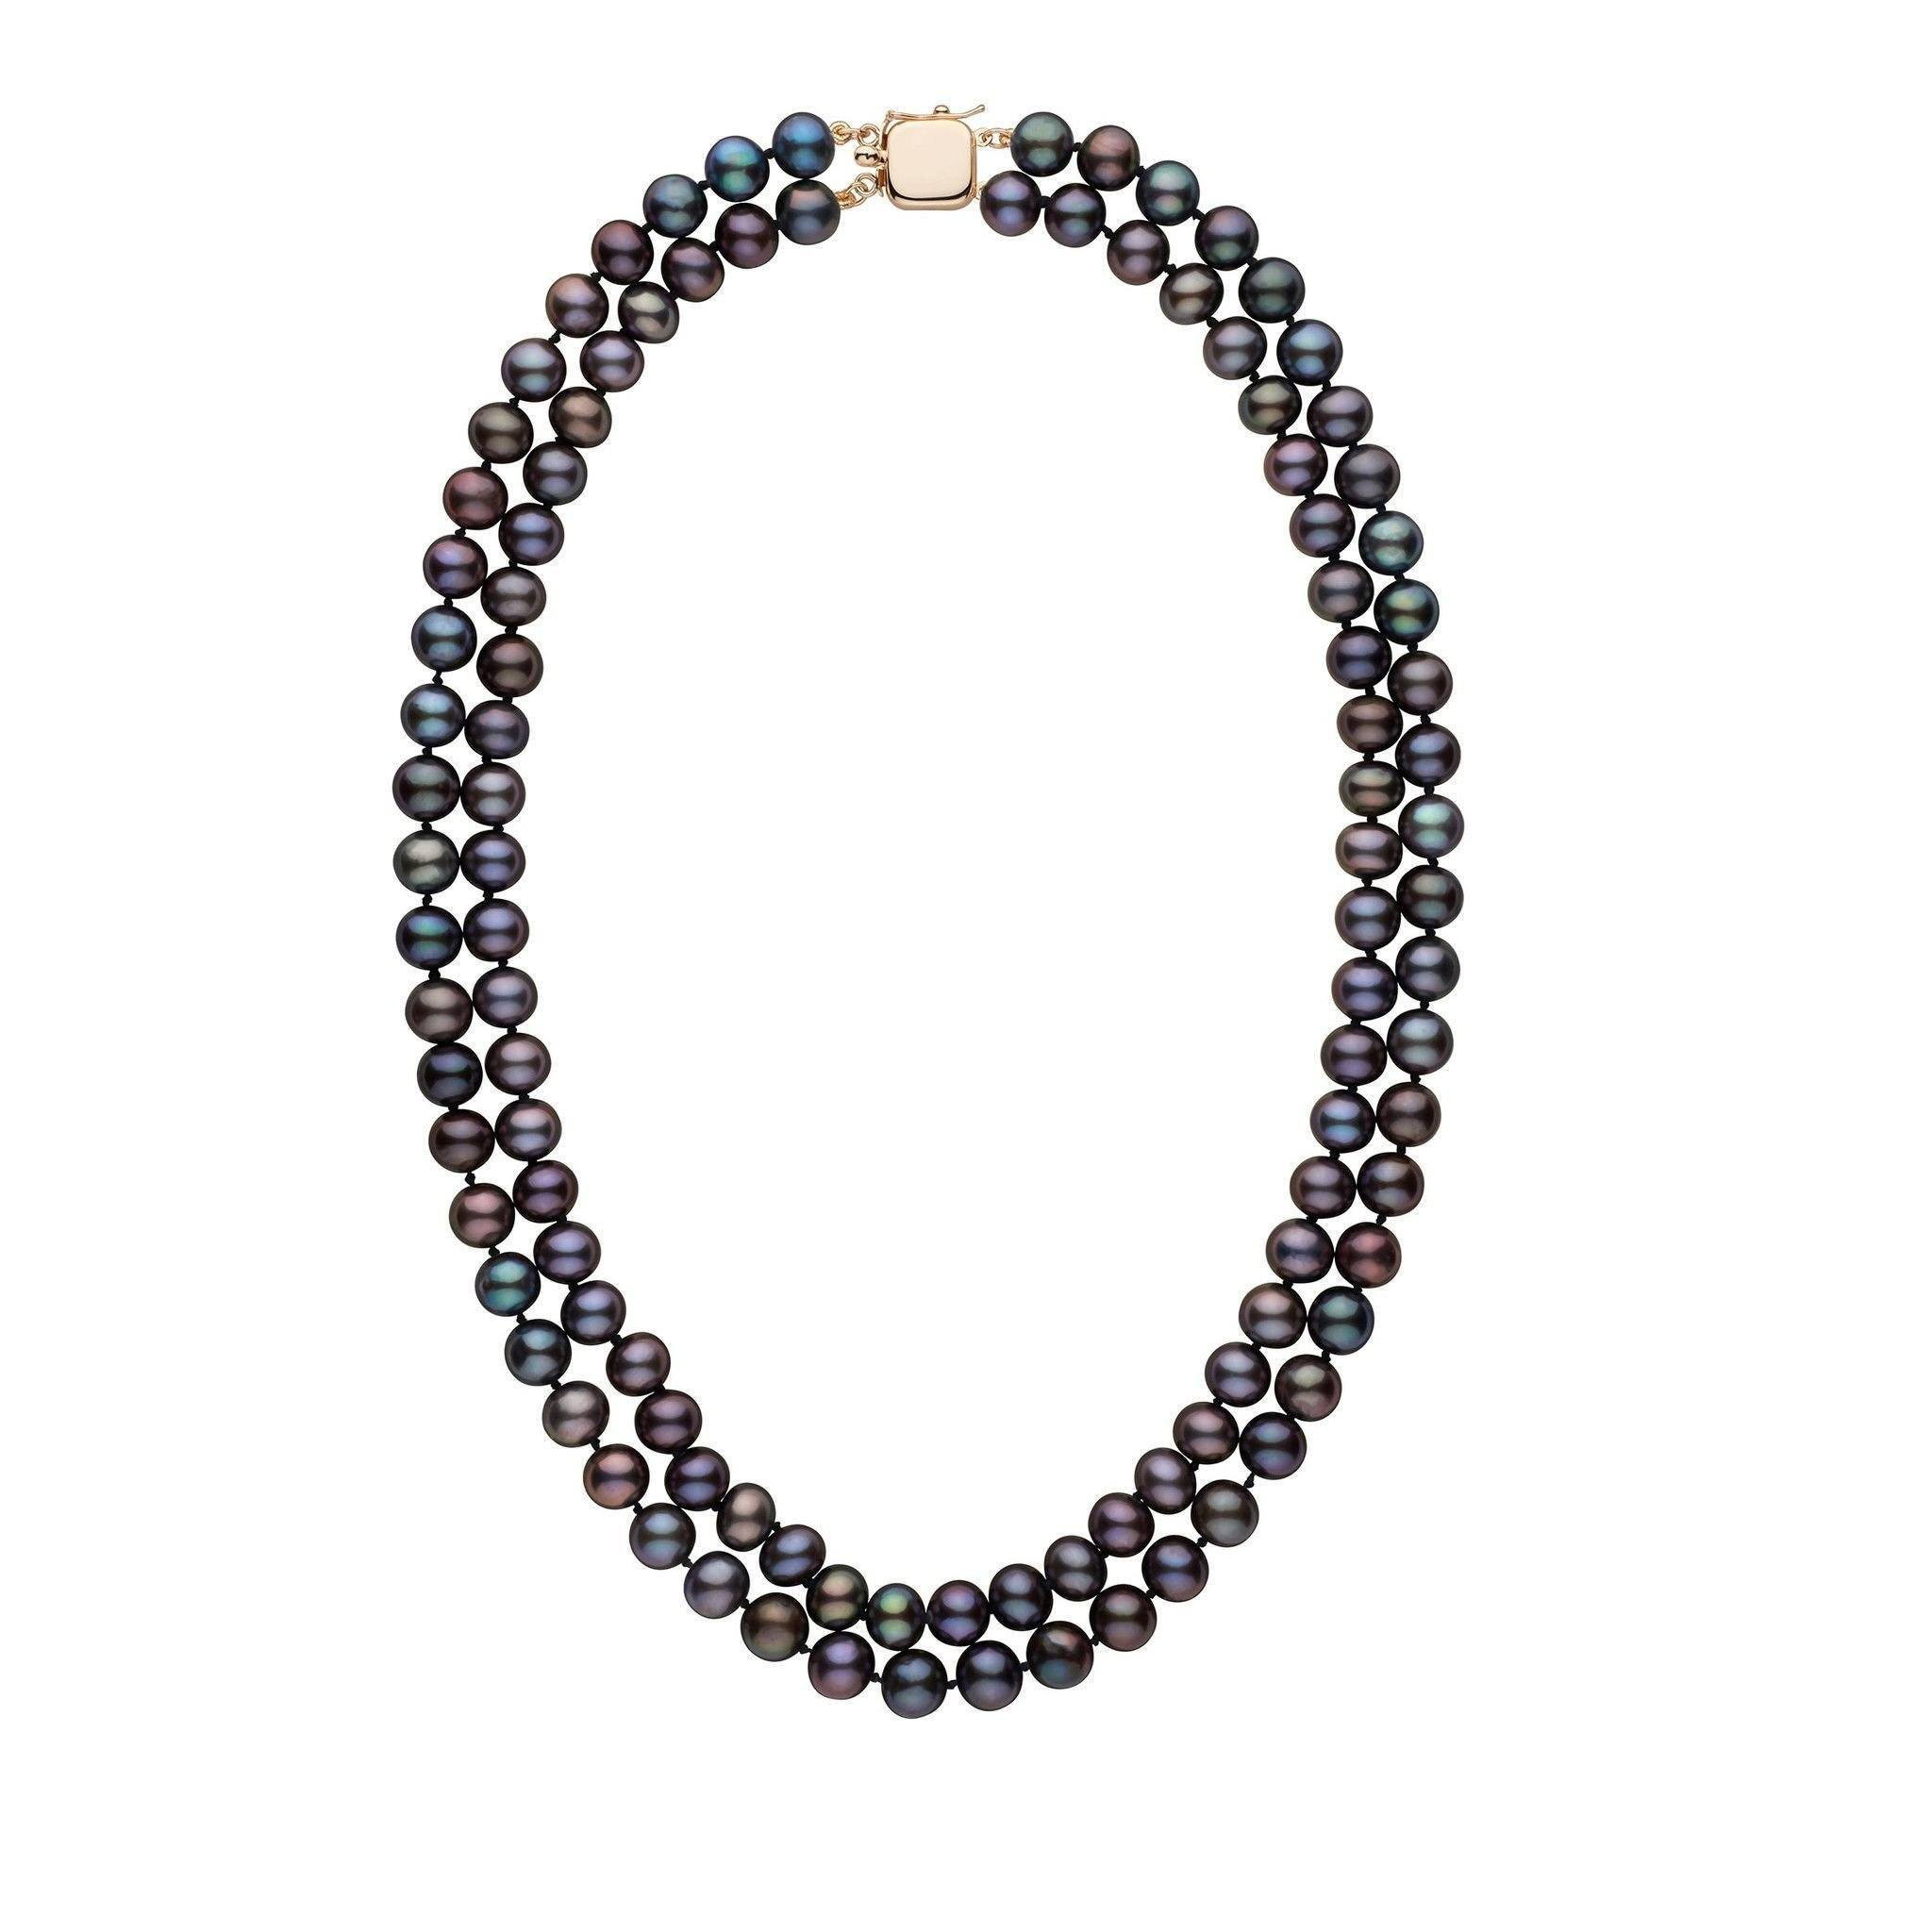 7.5-8.0 mm Double Strand AA+ Black Freshwater Cultured Pearl Necklace by Pearl Paradise